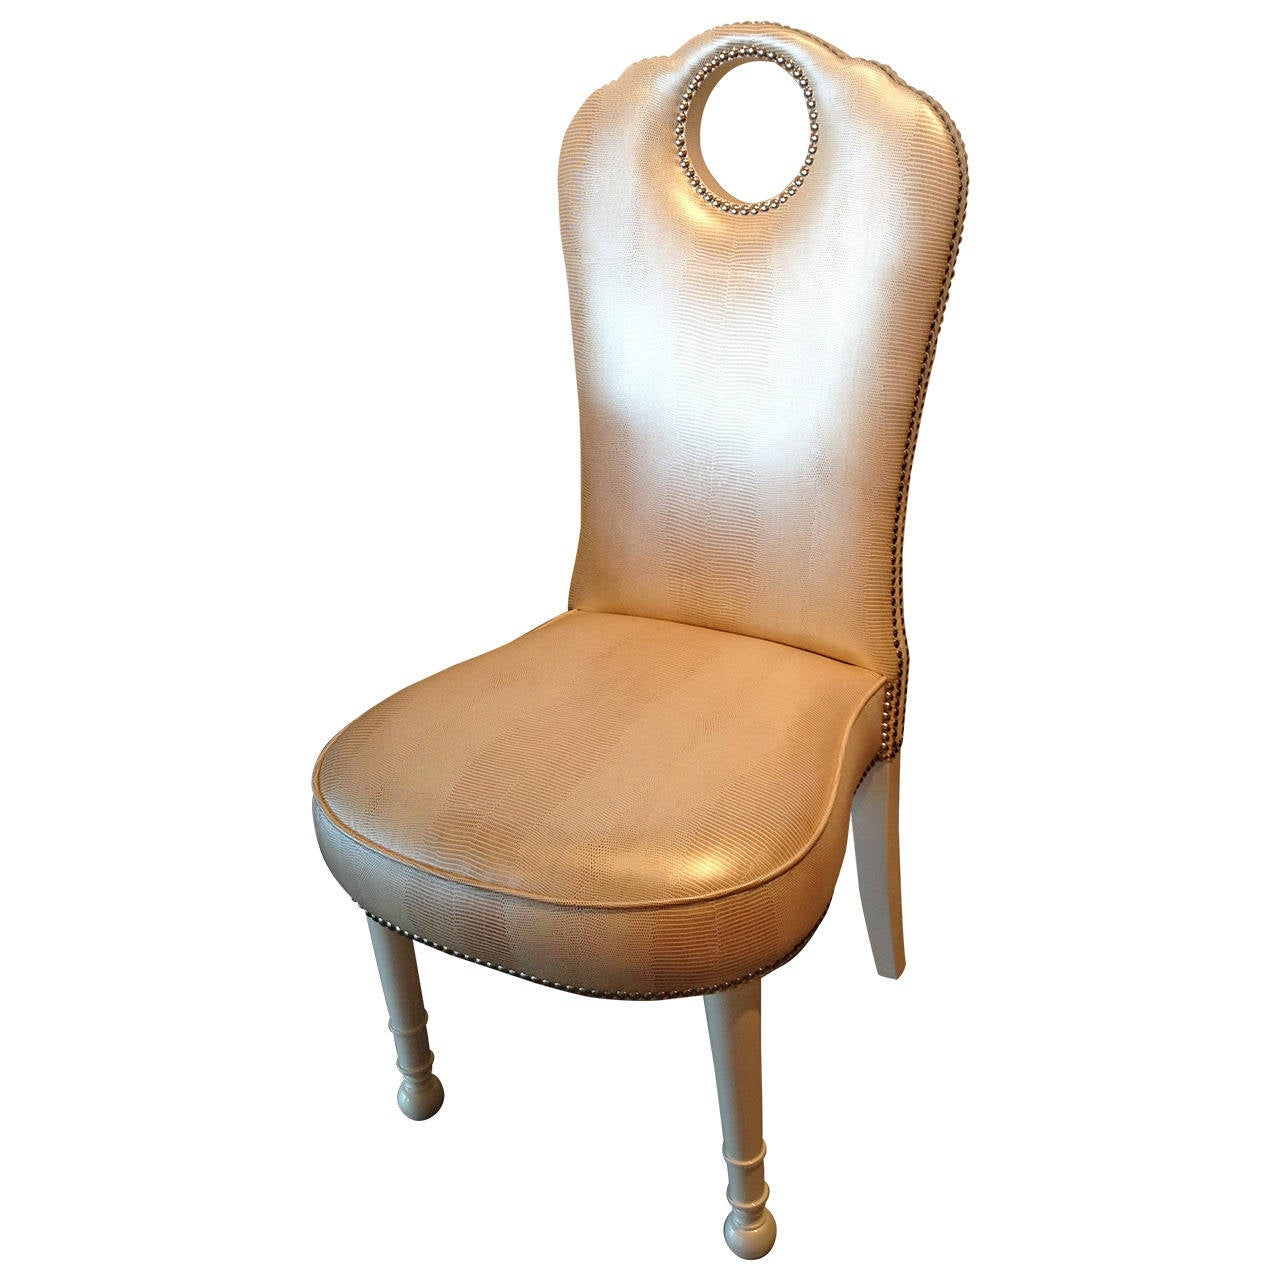 Hollywood Glam Decorative Chair at 1stdibs